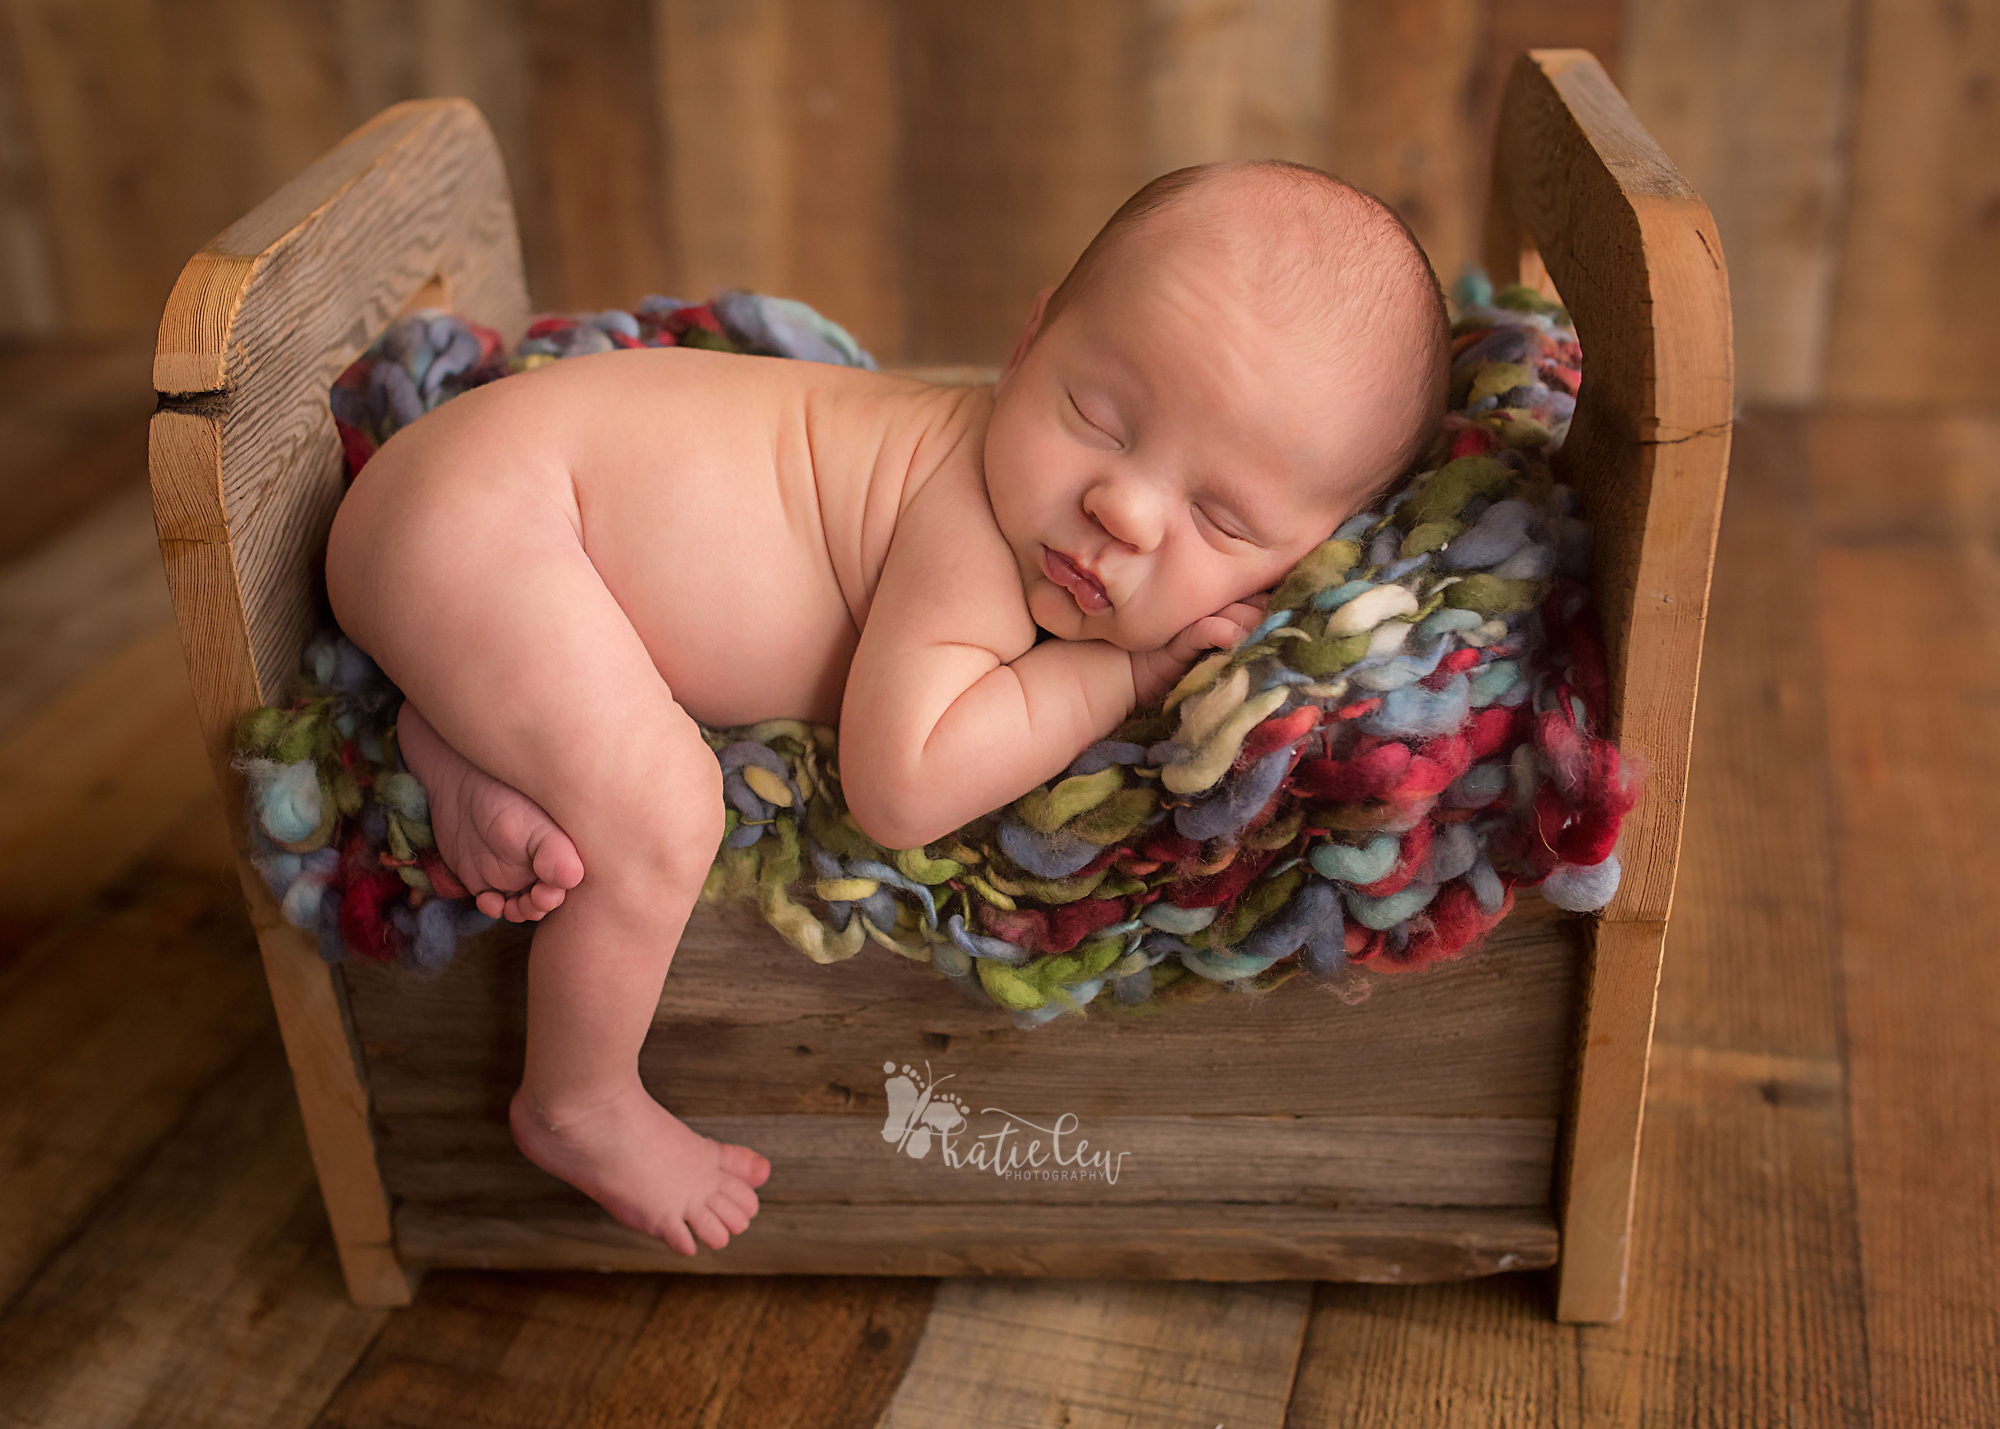 tiny baby bed with a newborn baby boy in it.